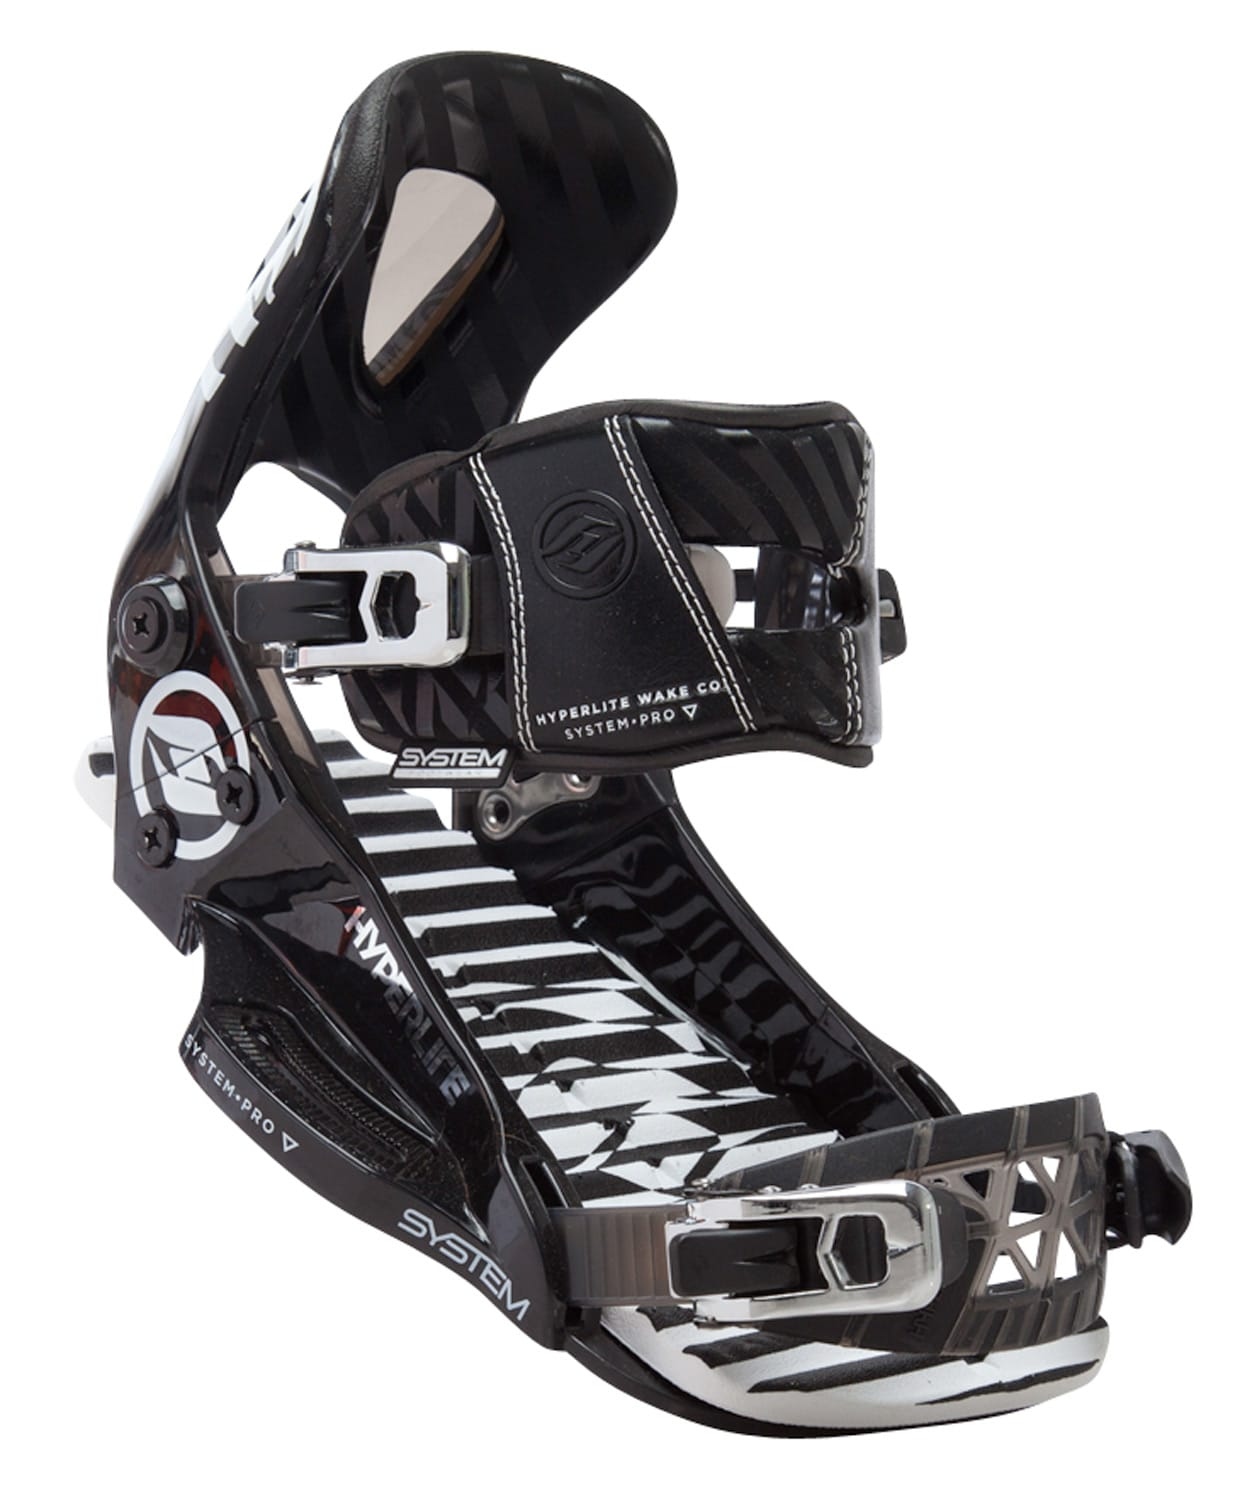 Hyperlite System Pro Wakeboard Bindings 2018